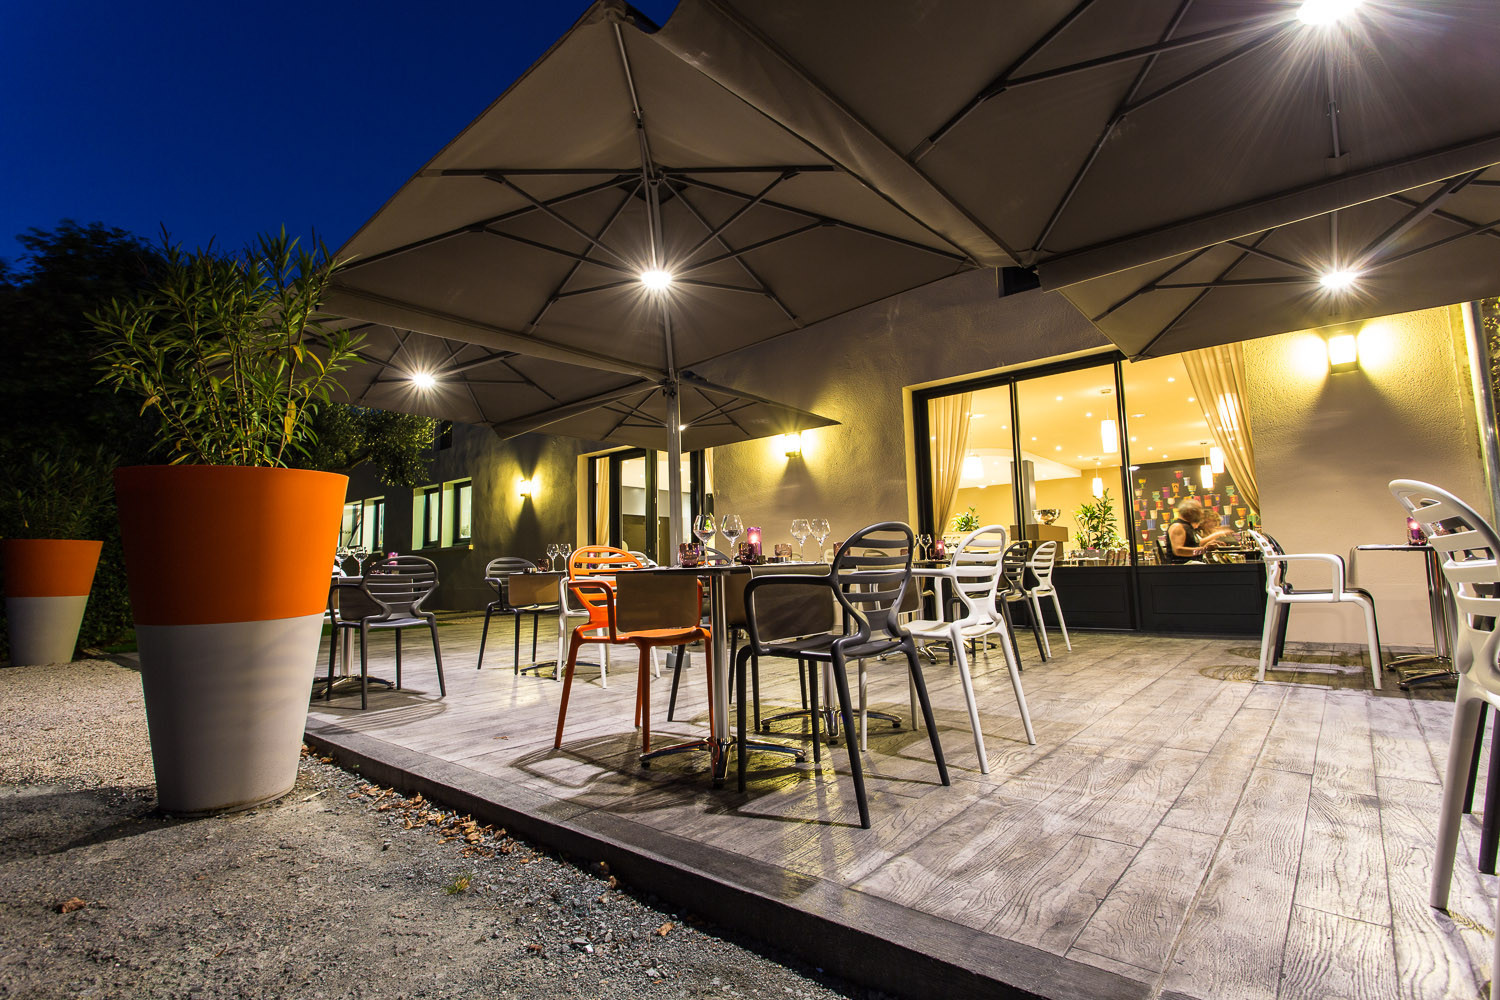 La Terrasse by night – Restaurant de Tradition La Virgule – Niort